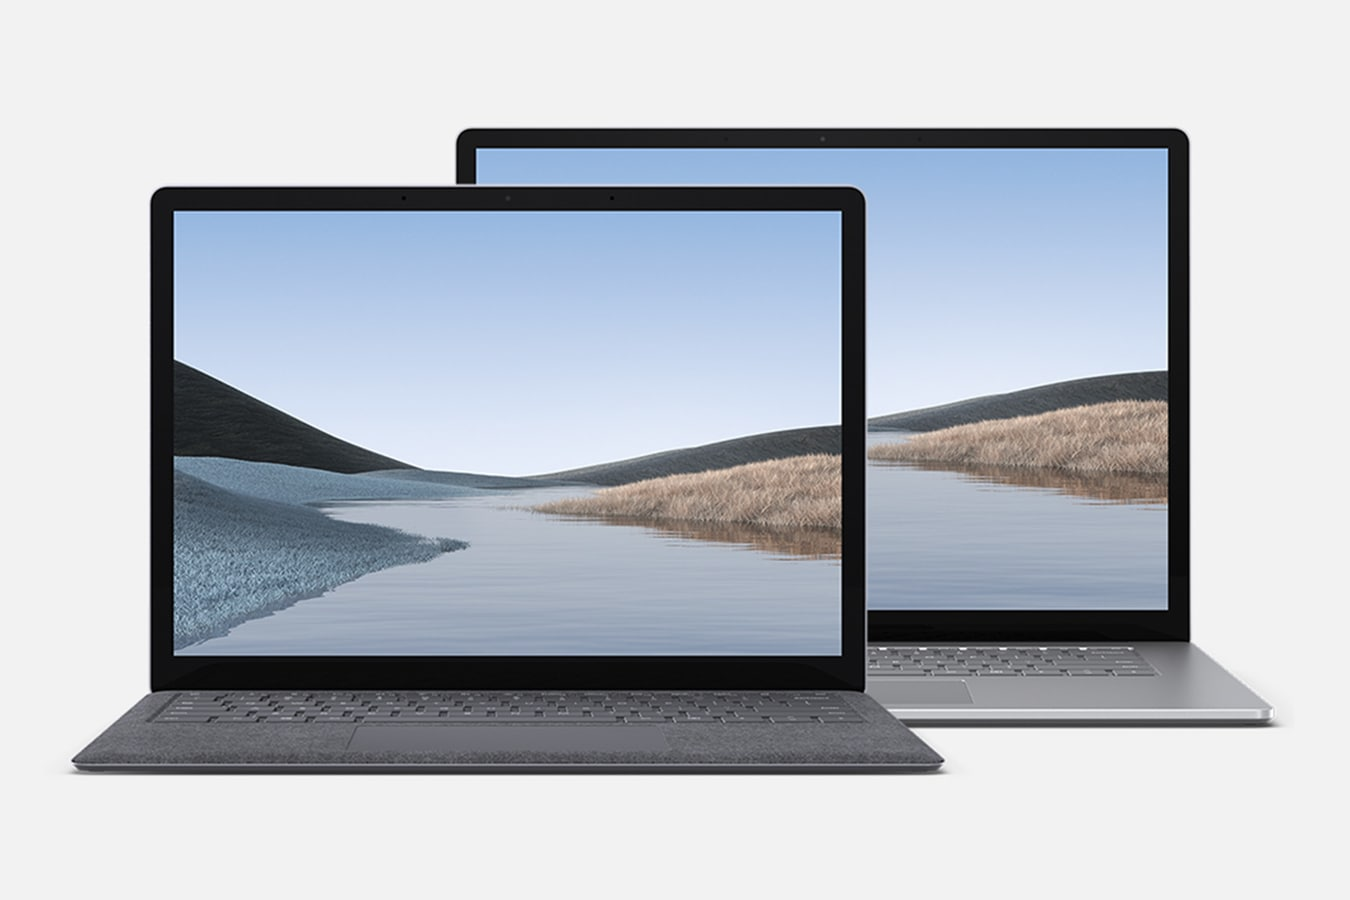 جهاز Surface Laptop 3 يظهر بشاشة مقاس 13.5 بوصة و15 بوصة